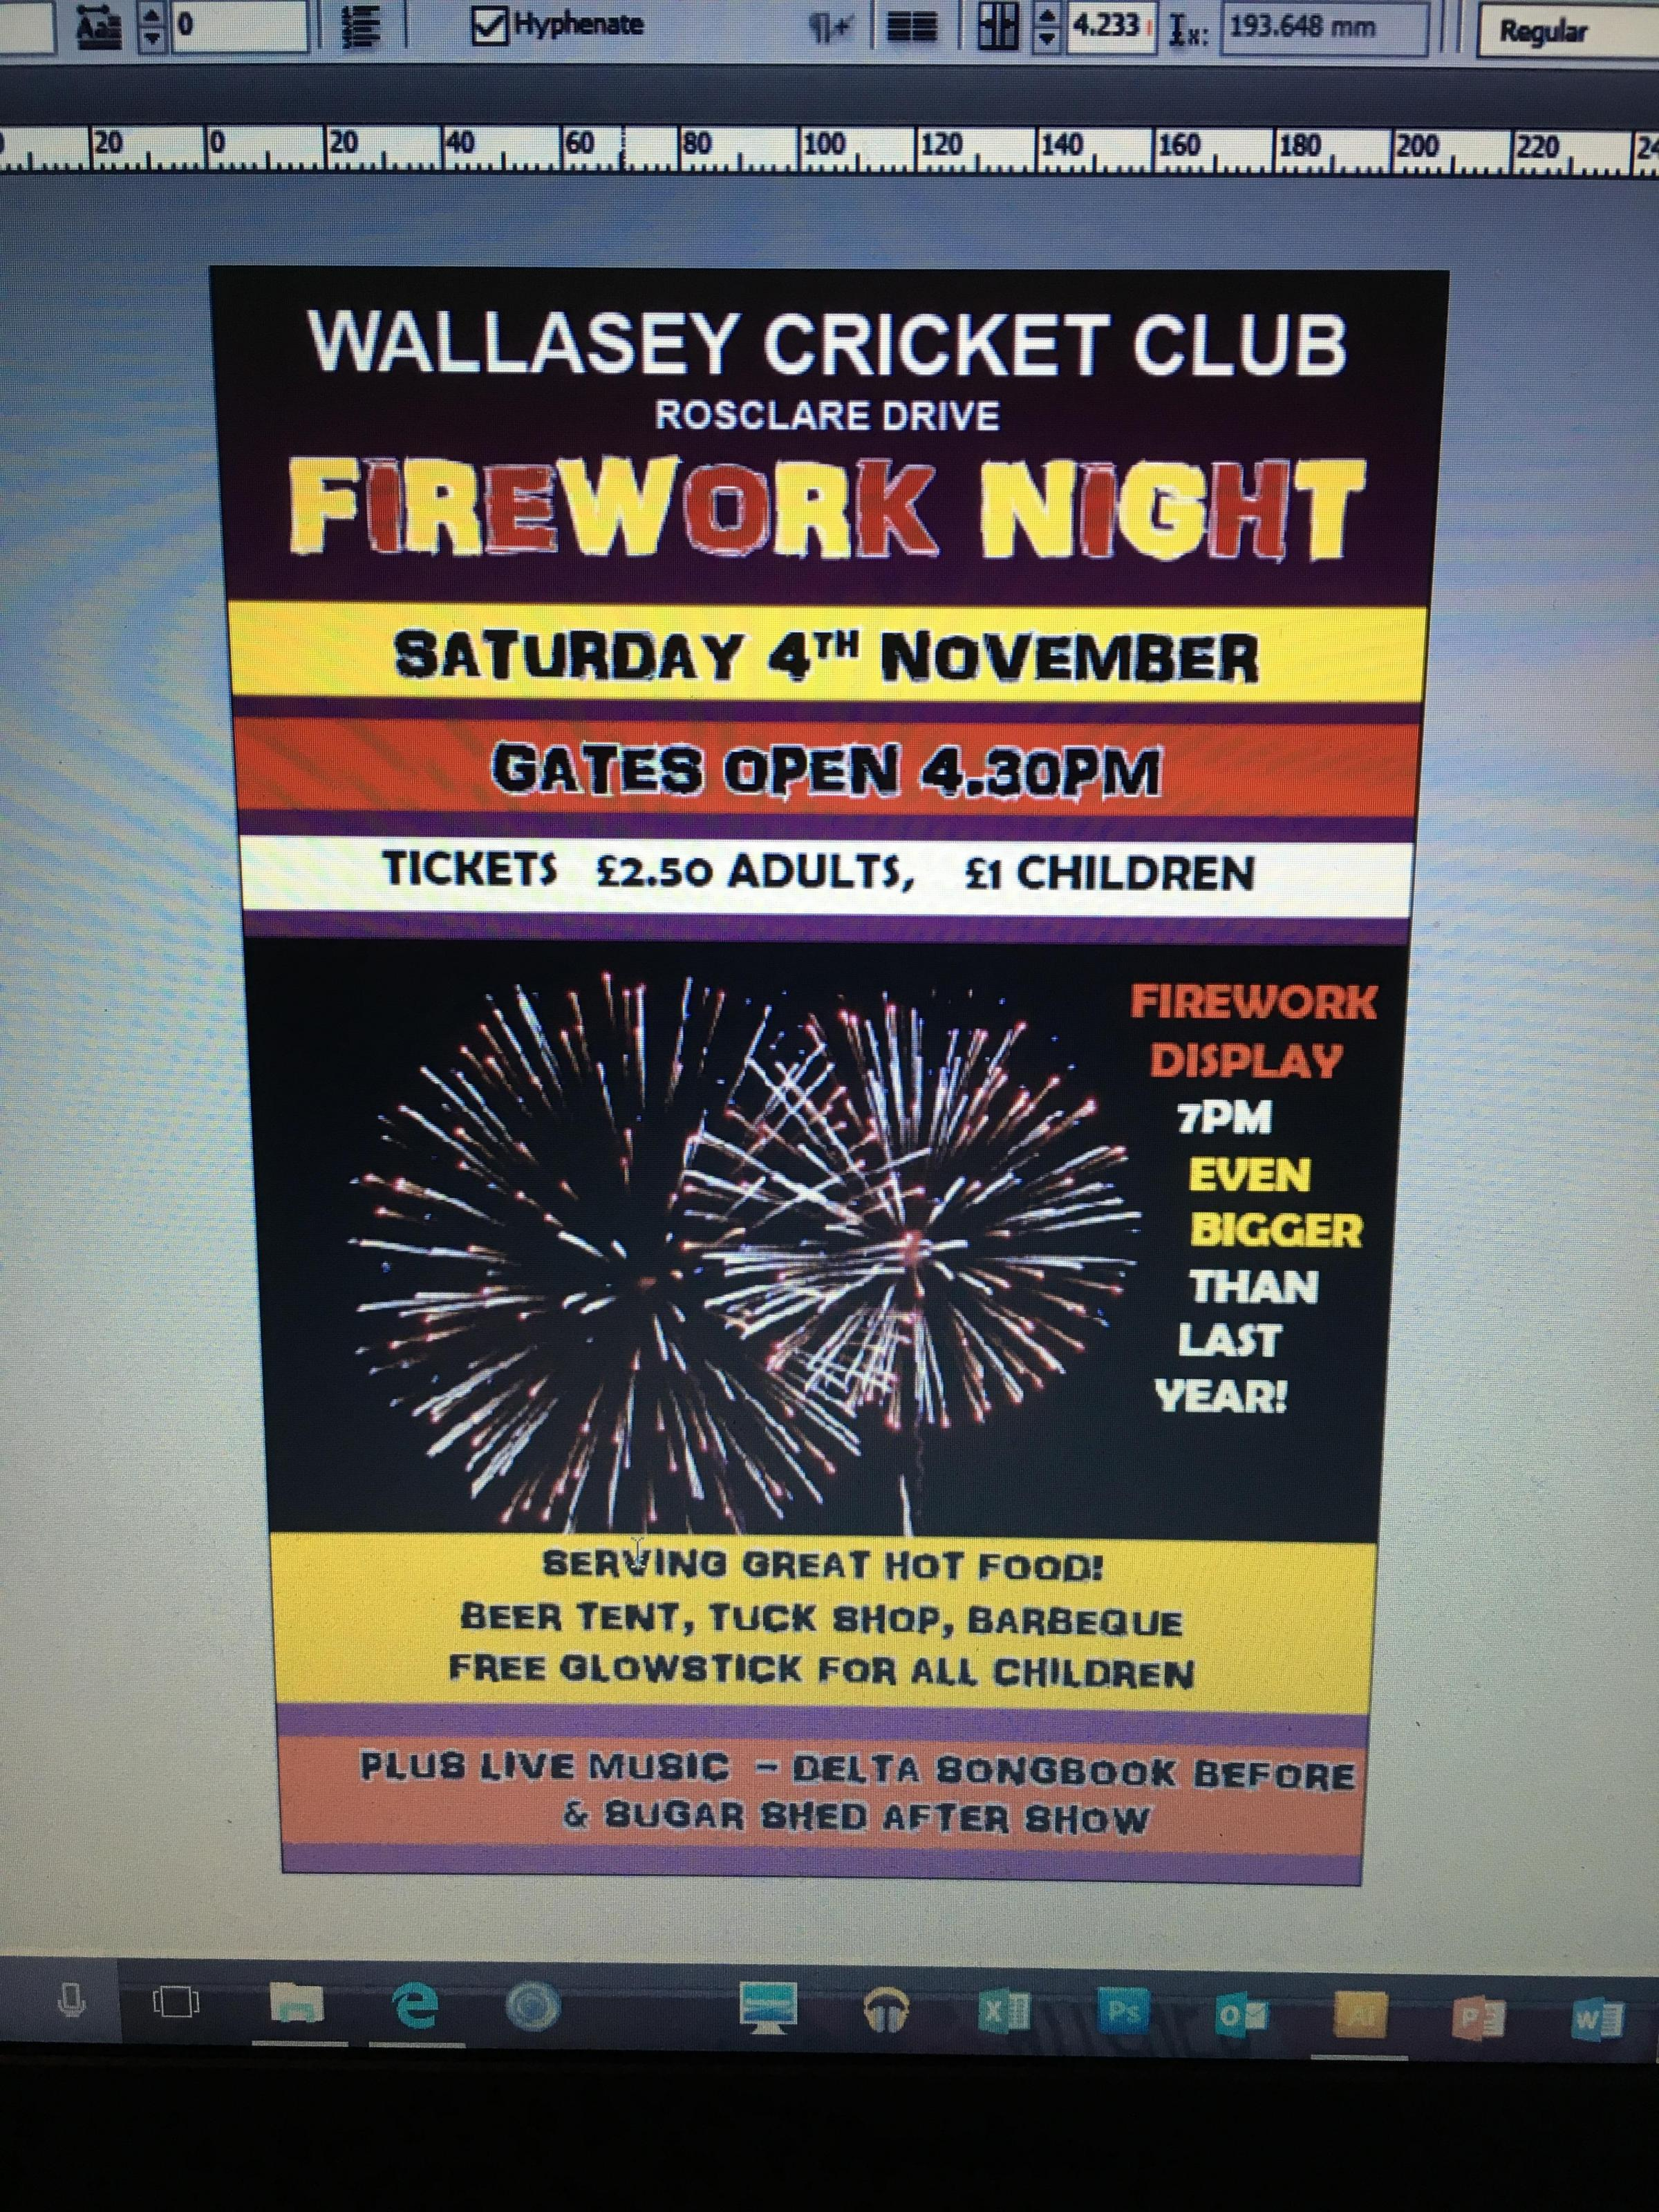 Wallasey Cricket Club Firework Night